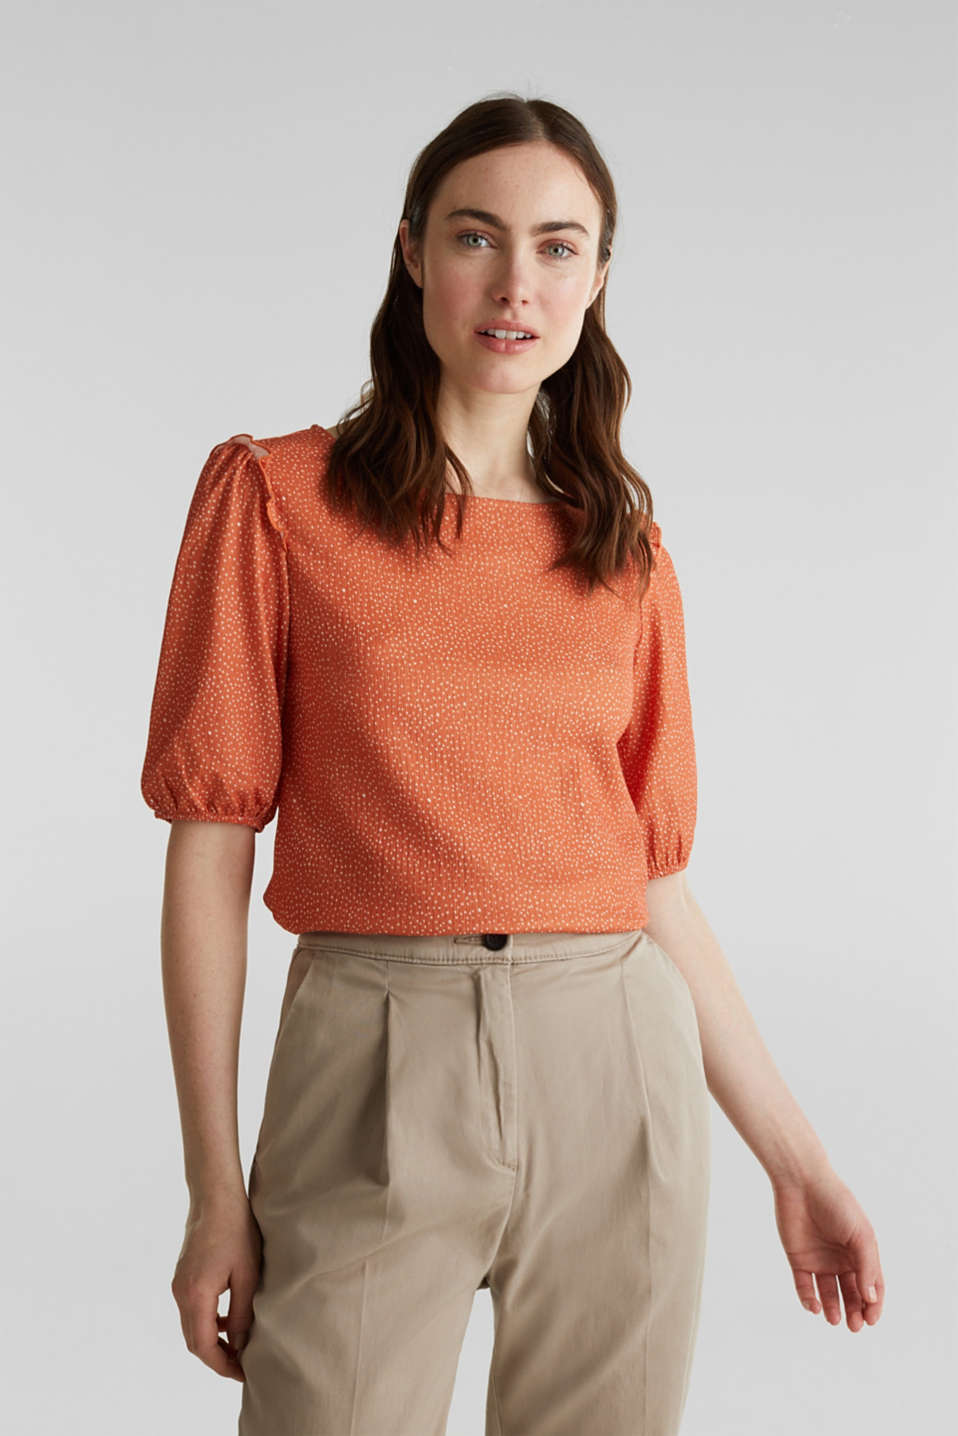 Esprit - Blouse top with frills, recycles